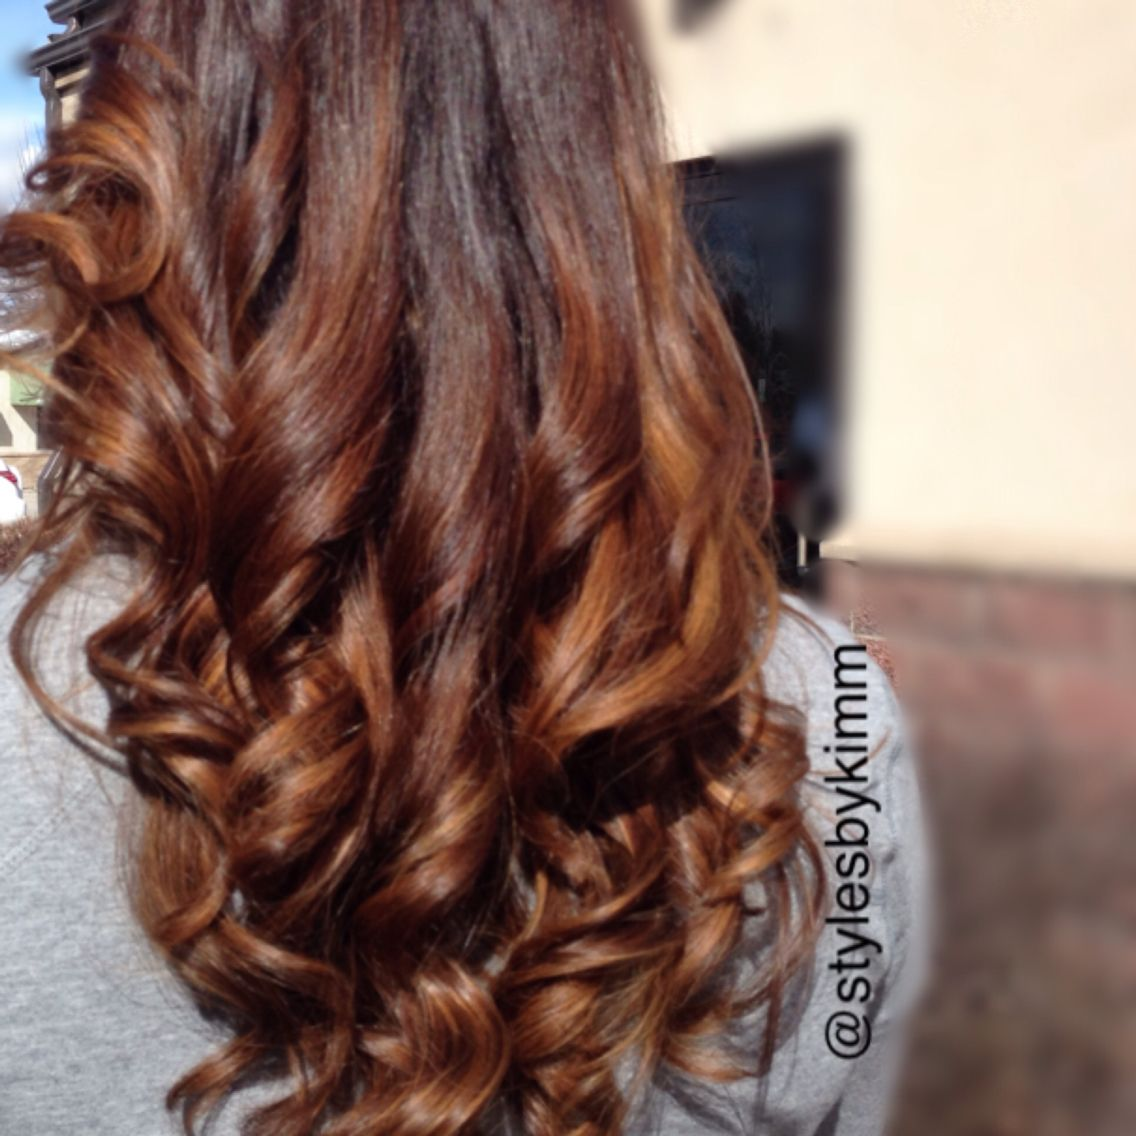 Redken Color, Balayage, Ombre, Chocolate Cherry Carmel hair | Kim ...